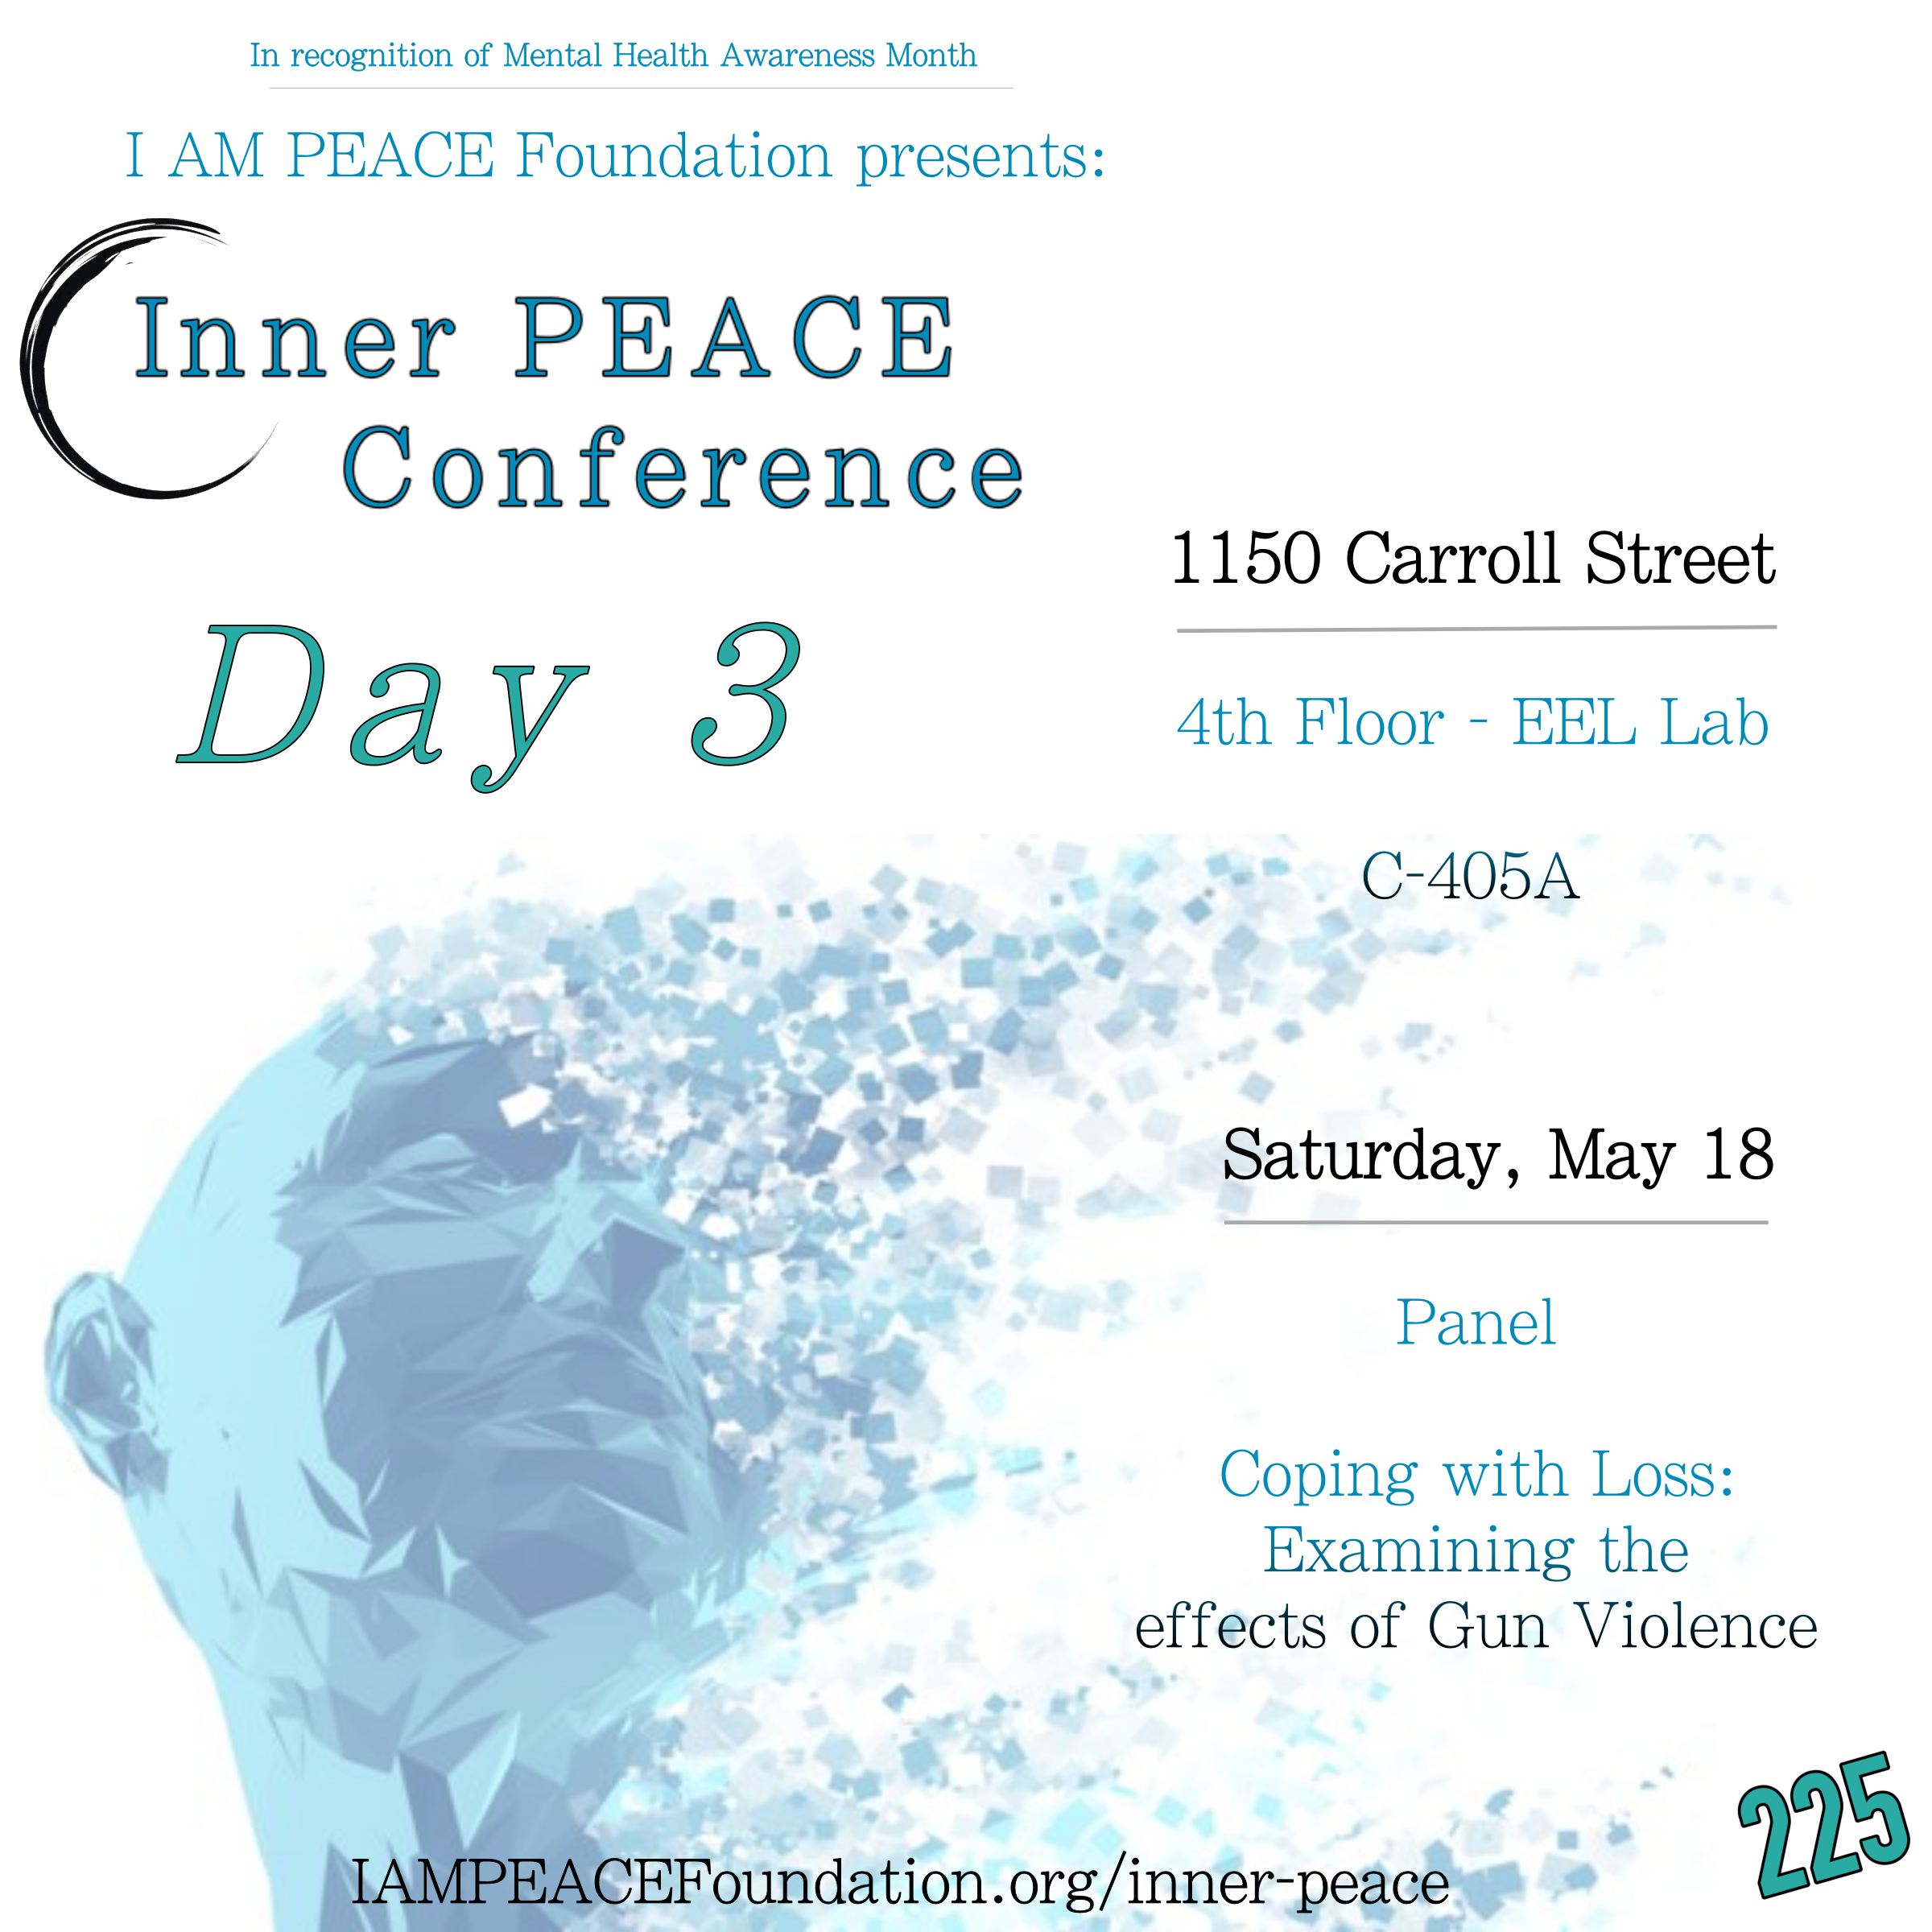 Inner PEACE DAY 3 conference flyer - PNG.png